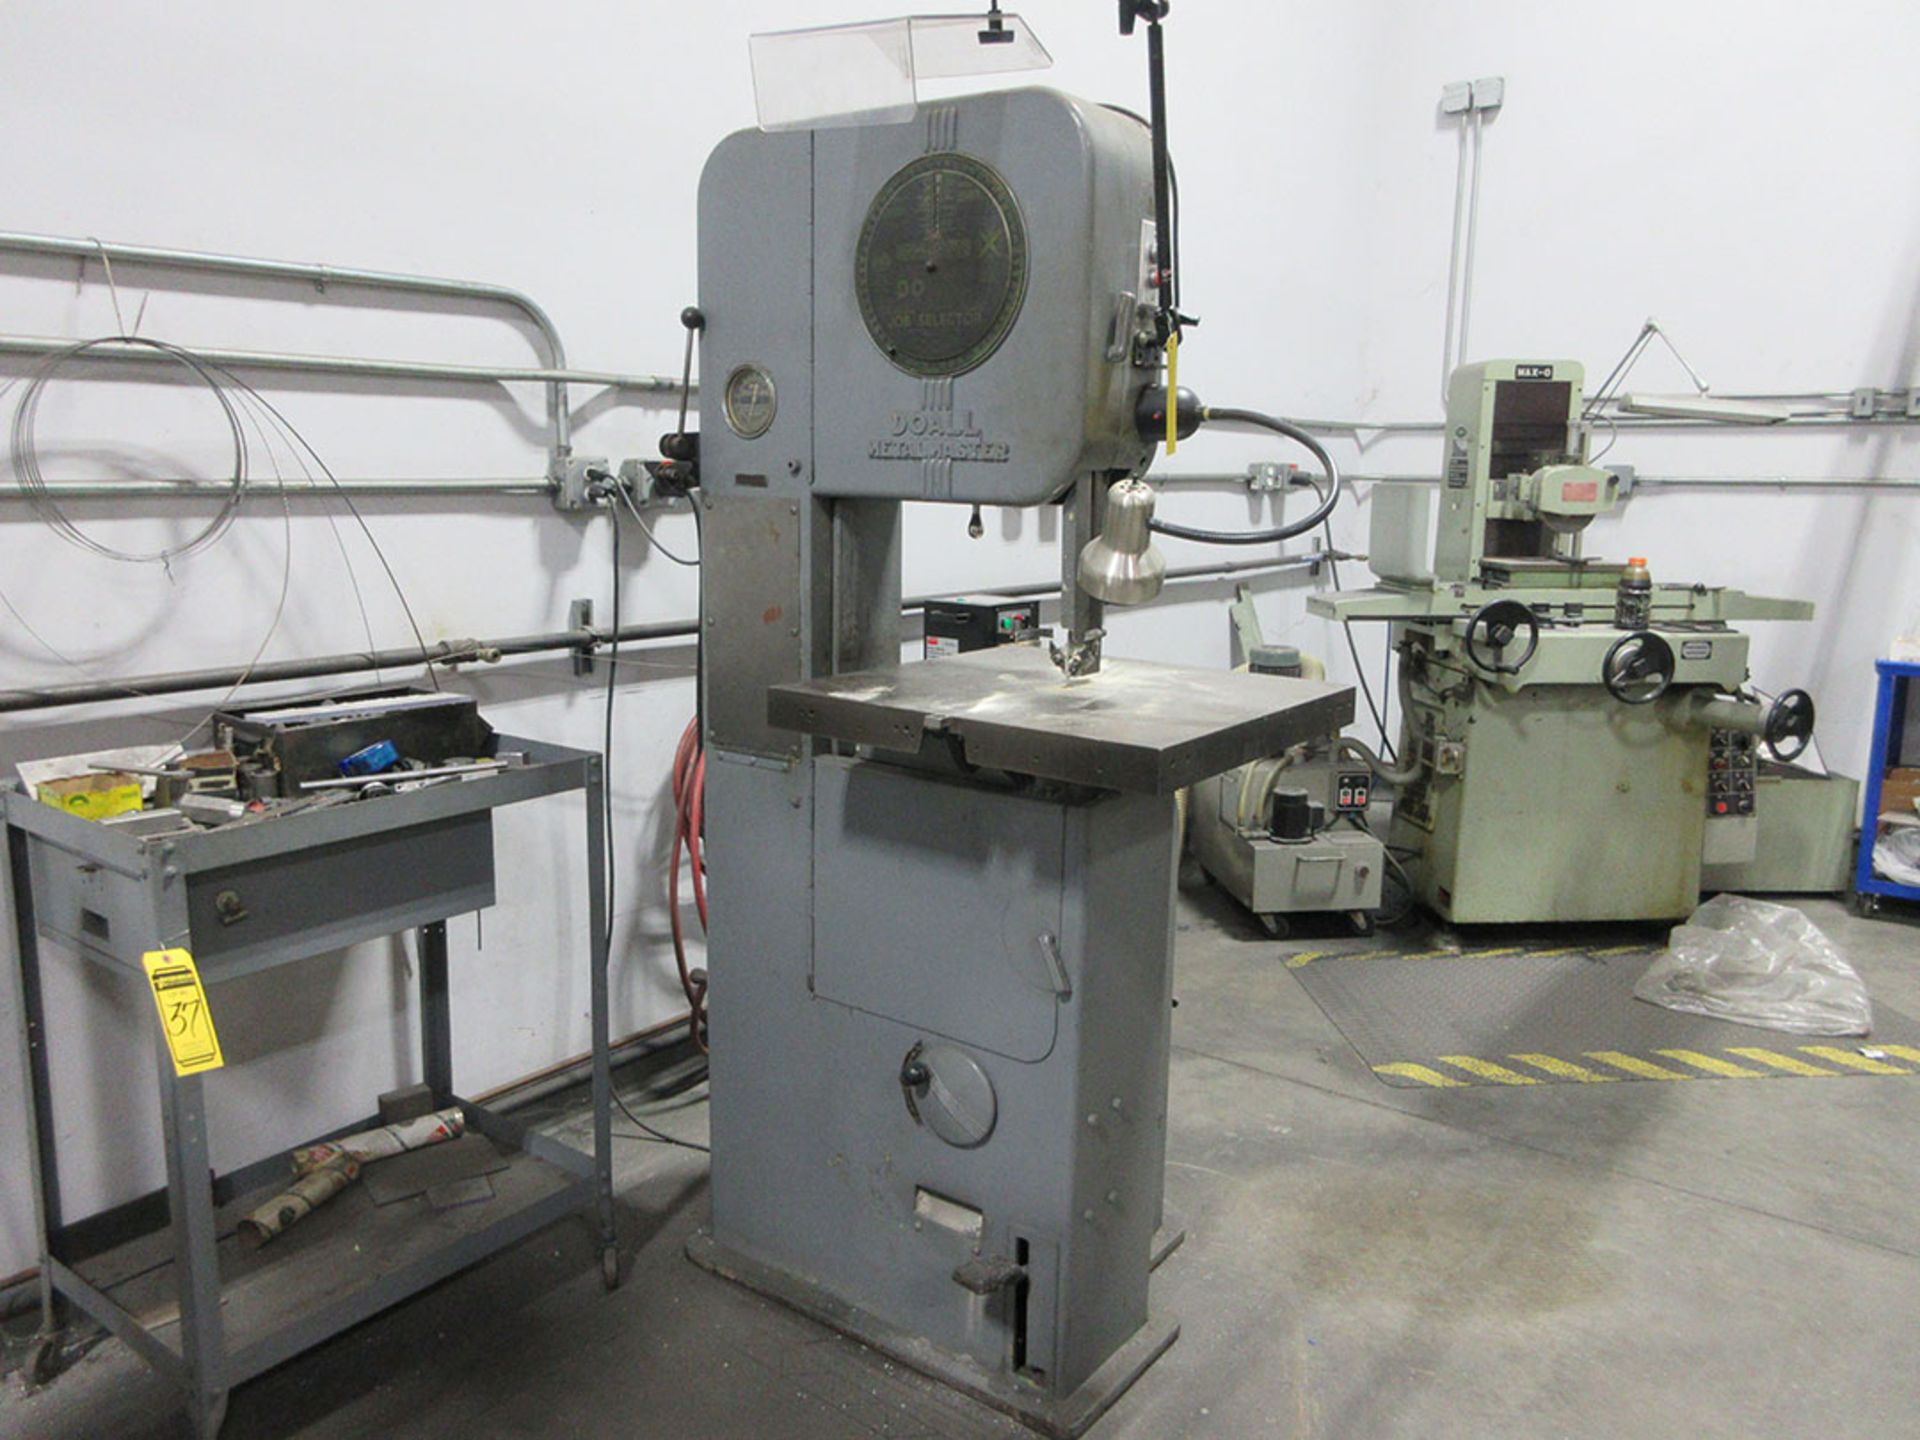 Lot 34 - DOALL METAL MASTER VERTICAL BAND SAW; 2' X 2' CONTOUR TABLE, 17'' THROAT, JOB SELECTOR, SPEED